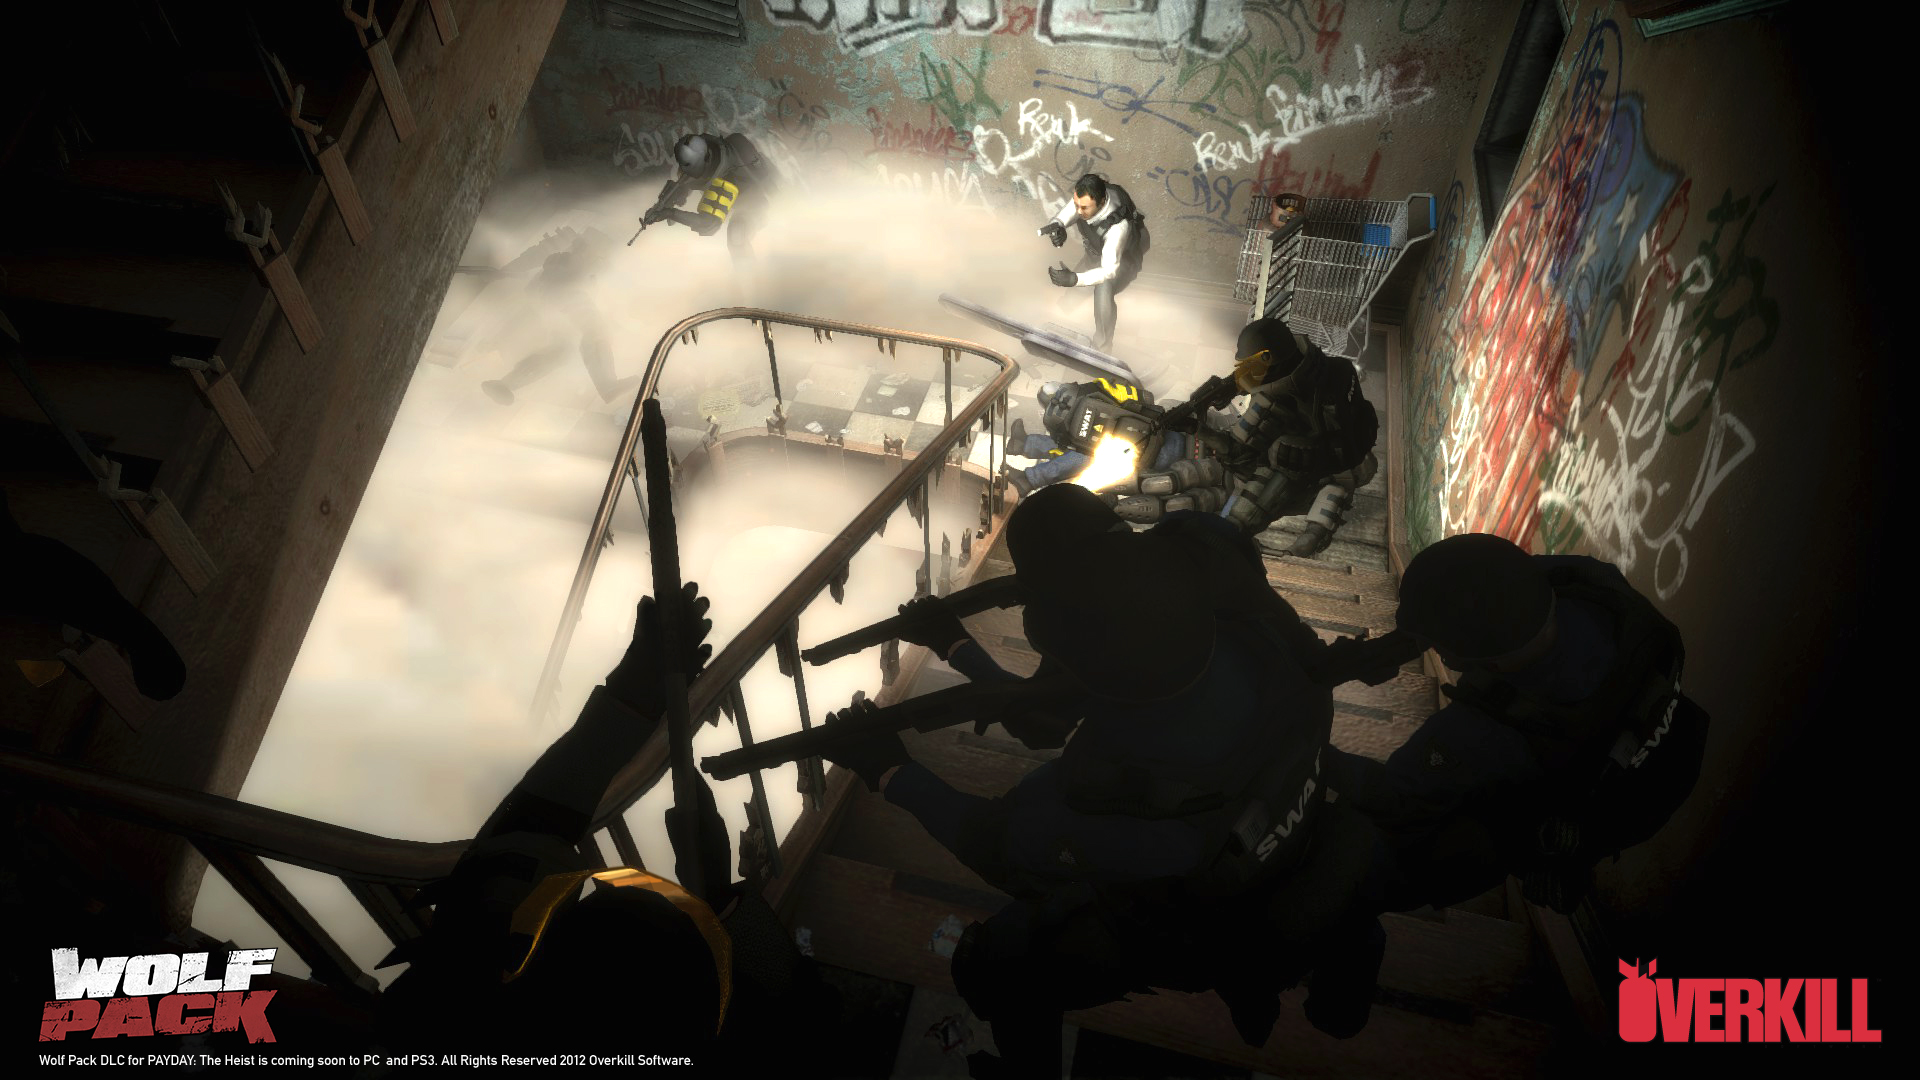 The Wolf Pack DLC is out on PC and PS3! - OVERKILL Software